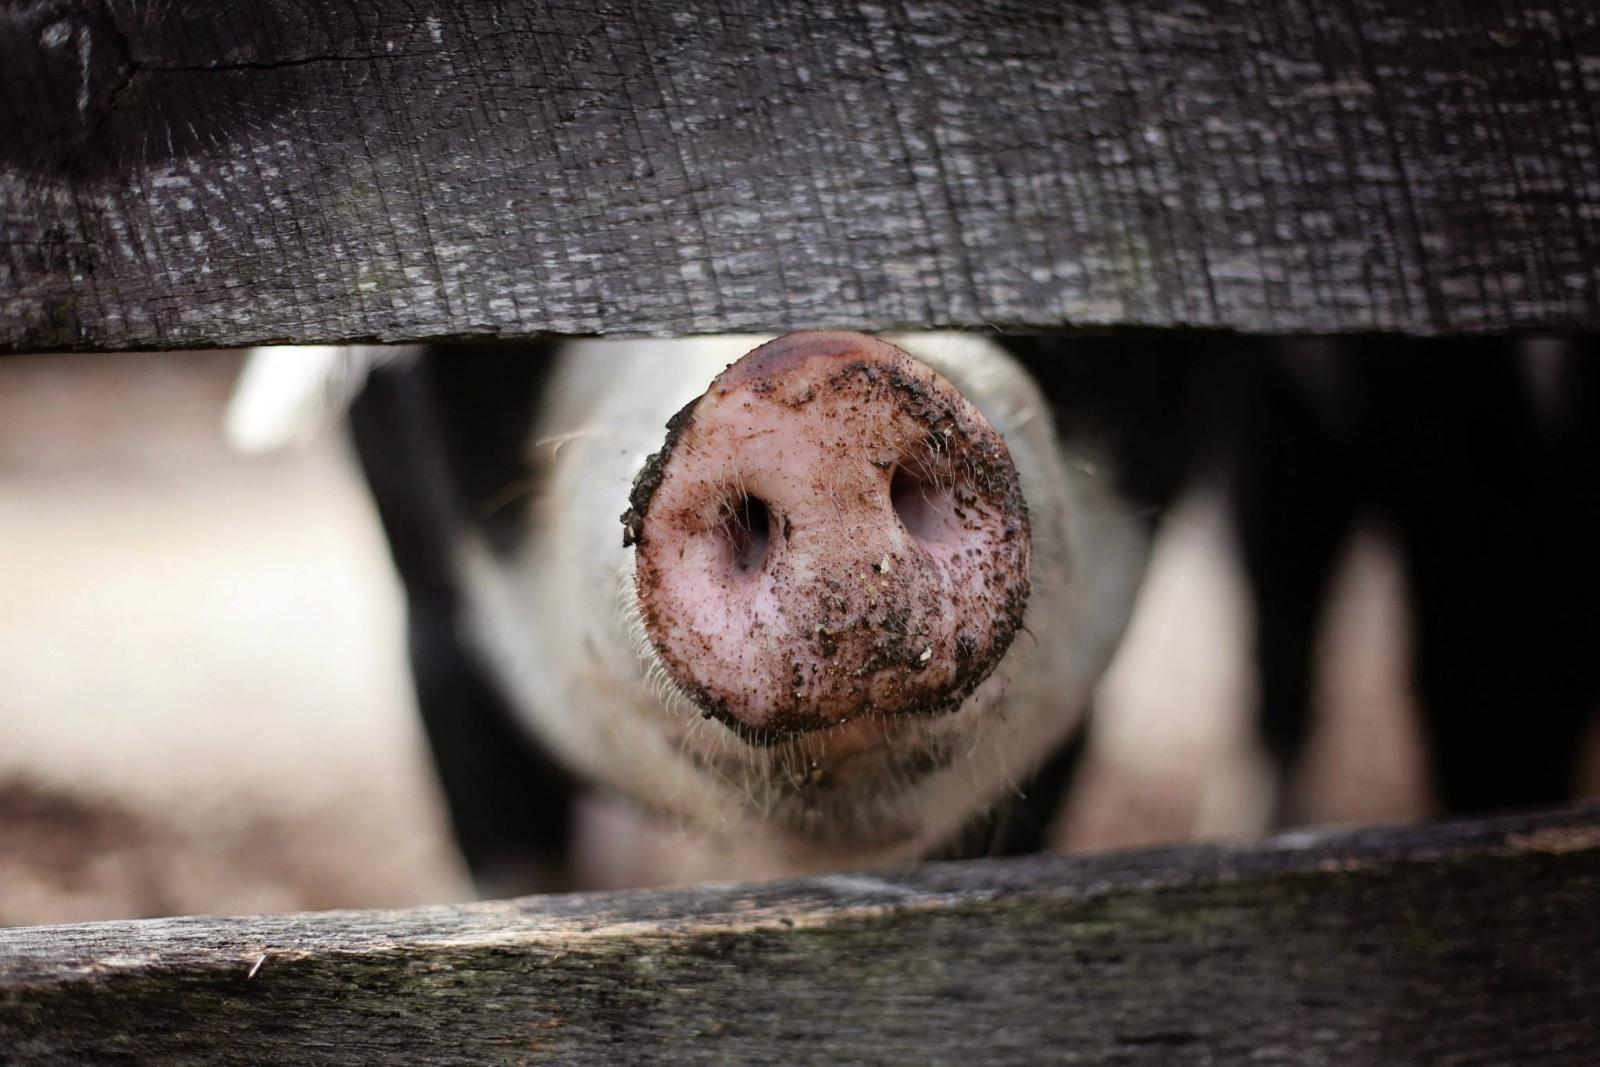 Pig in sty. Photo credit: Pexels